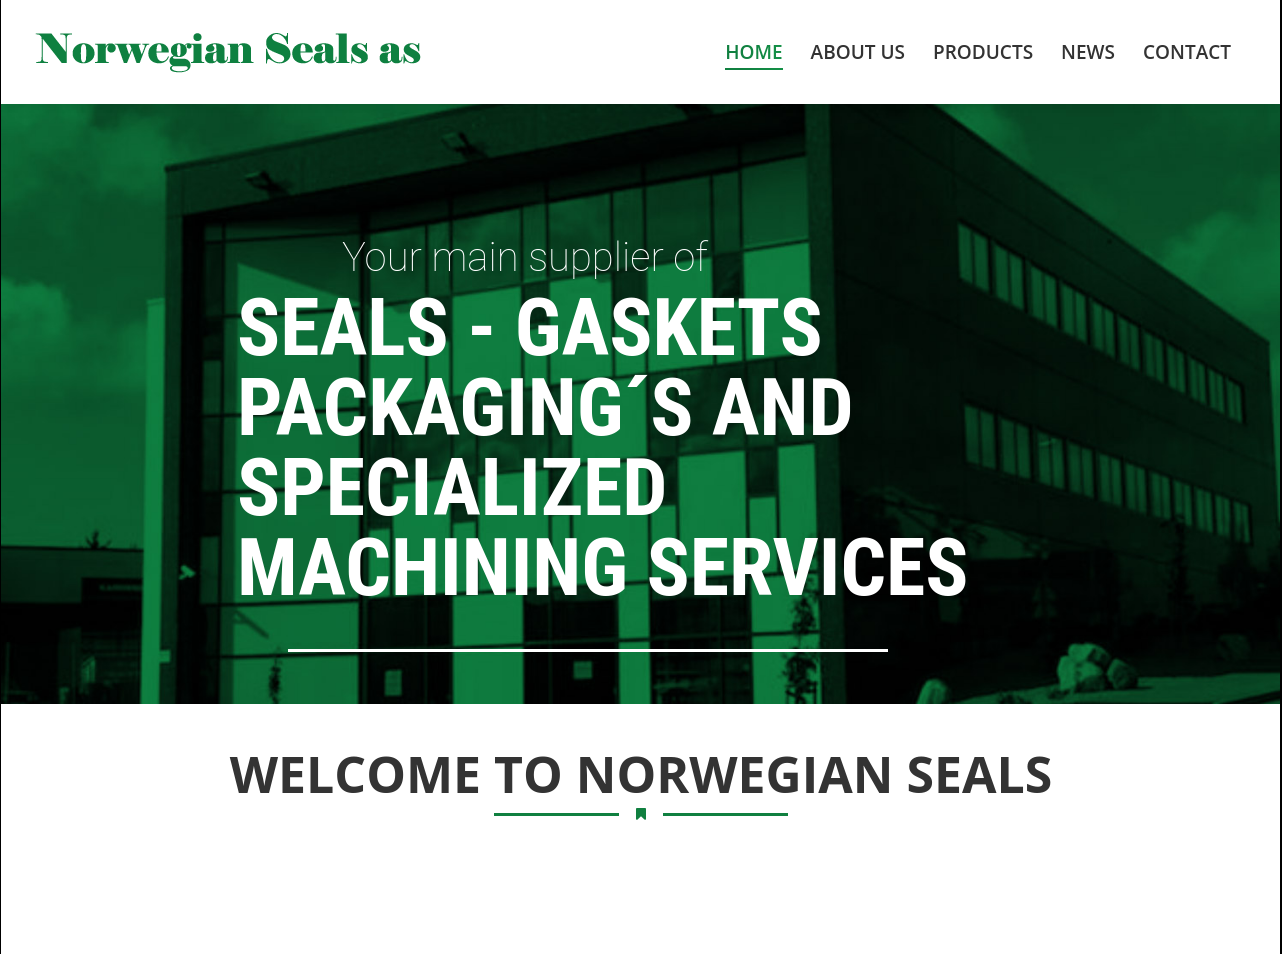 norwegianseals.no presentation